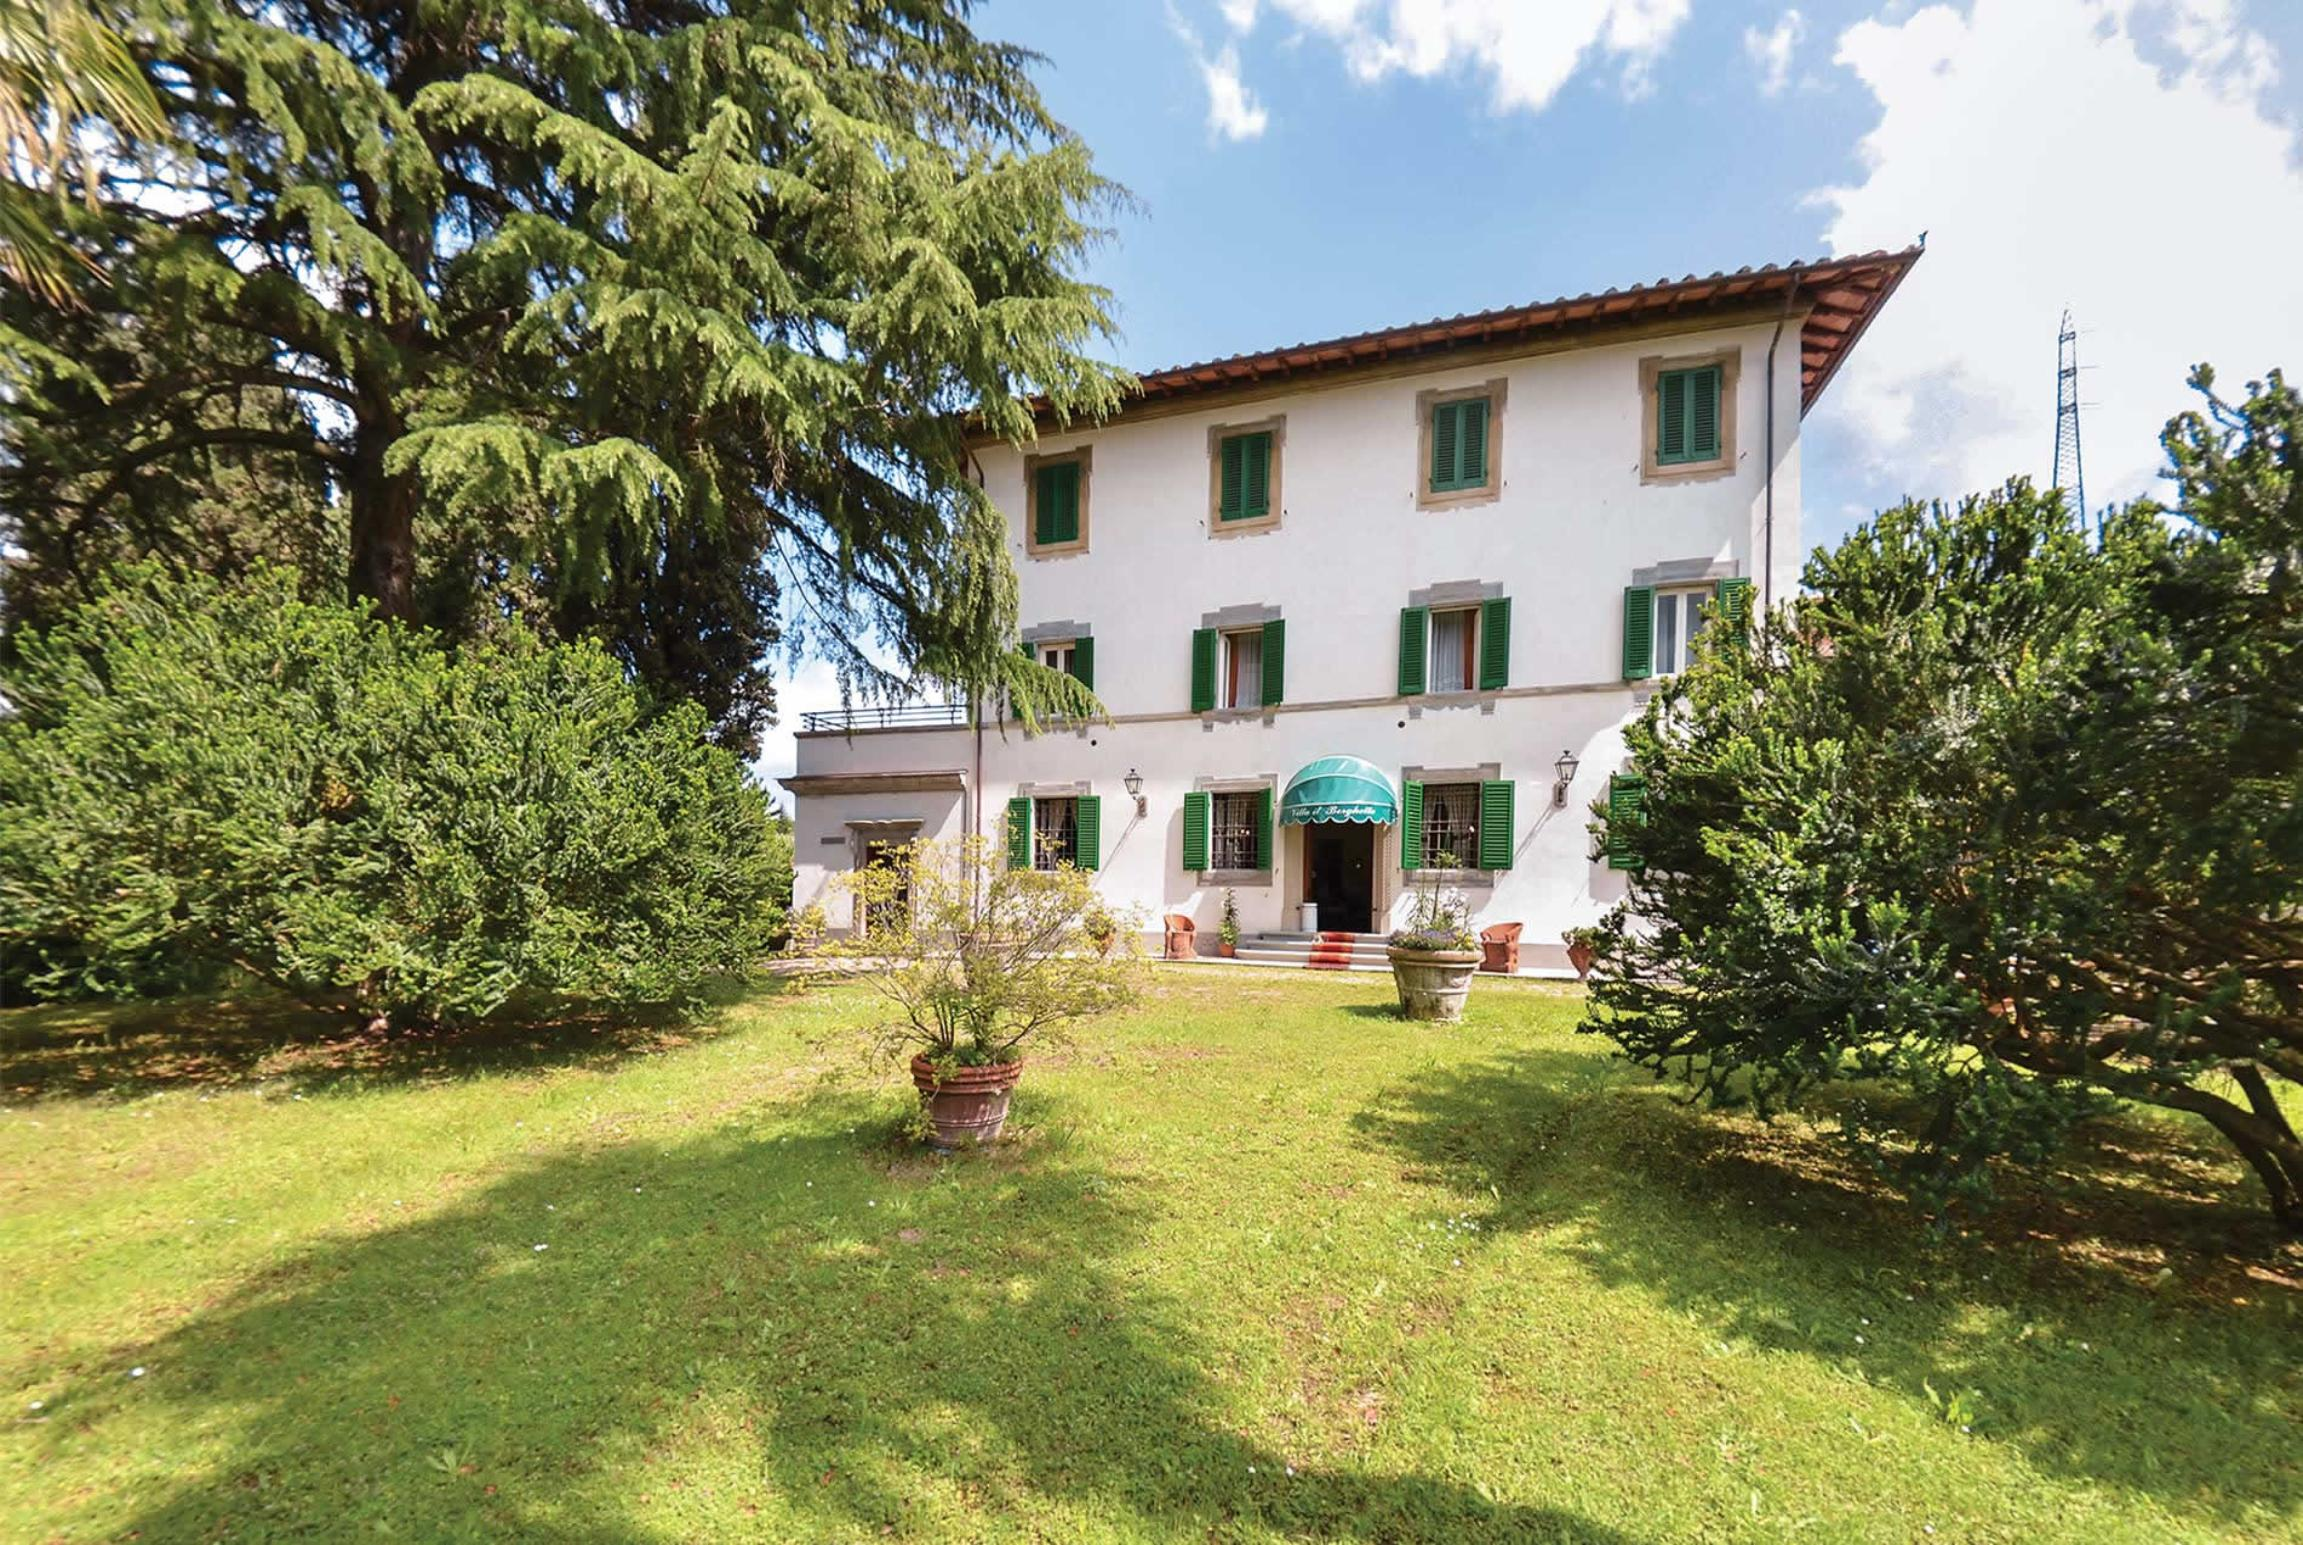 Read more about Borghetto villa